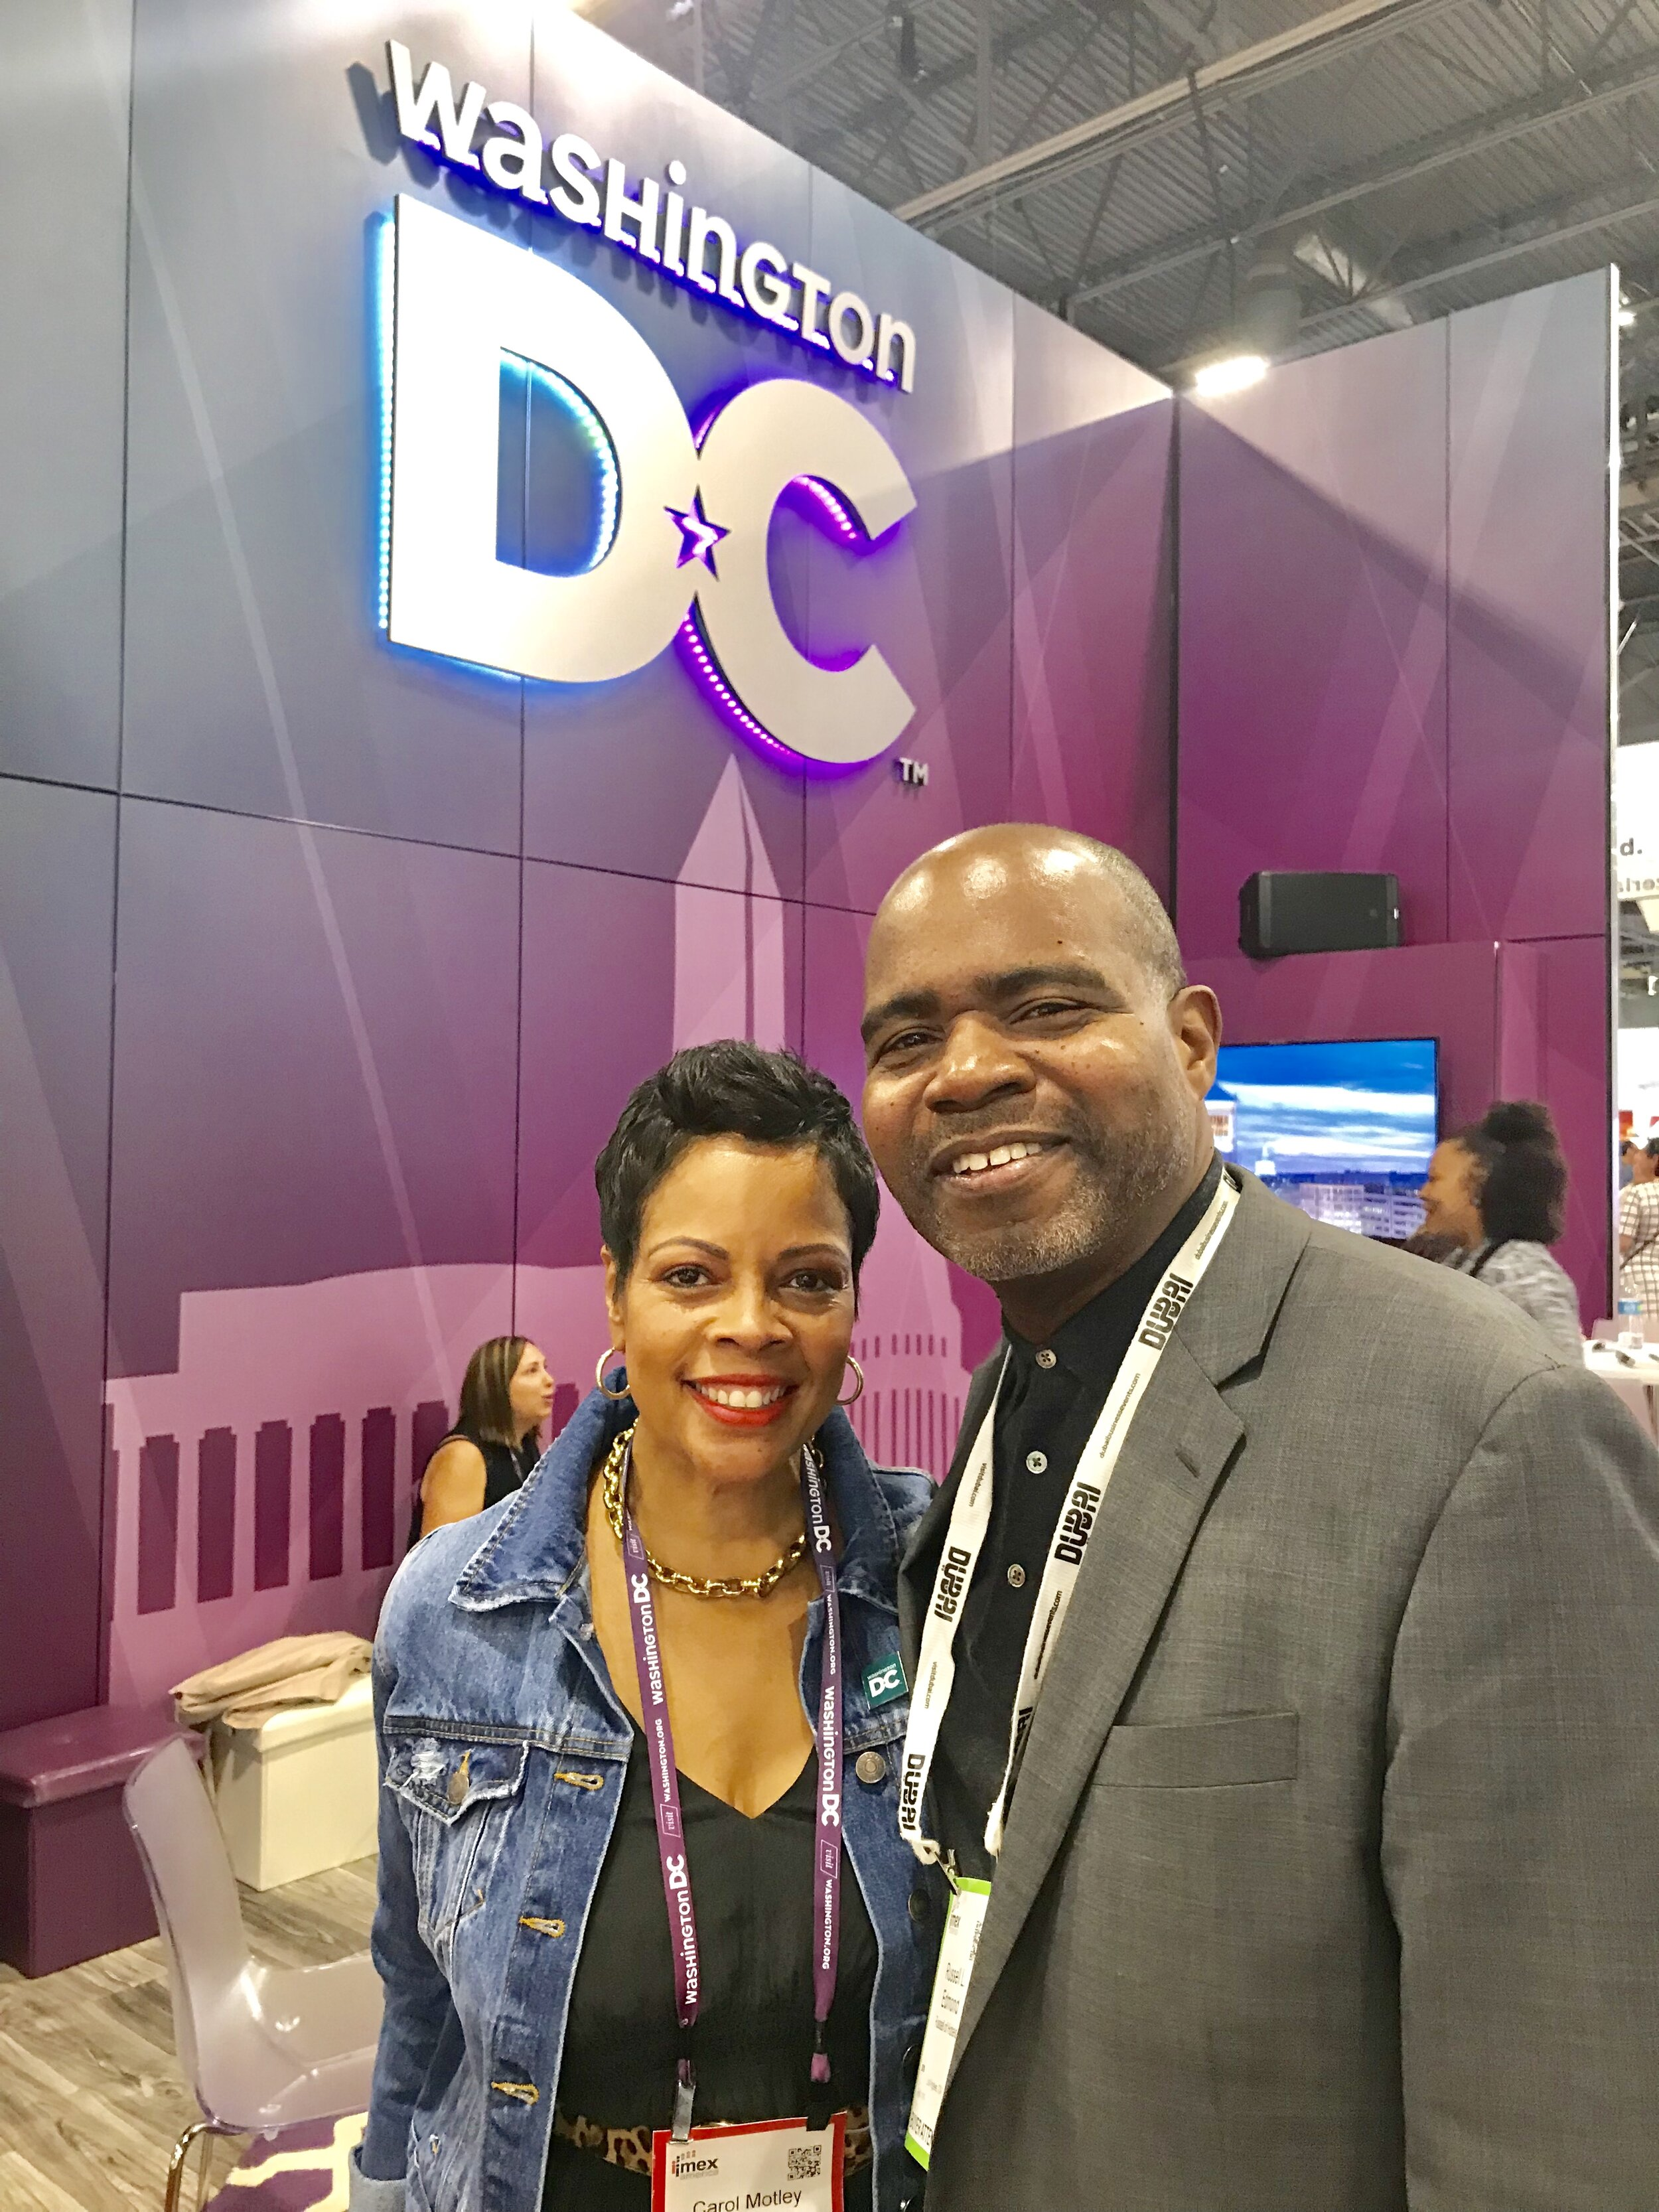 It's been 15 years since I've seen Ms. Carol Motley - Director of Convention Sales for Destination DC @IMEX19